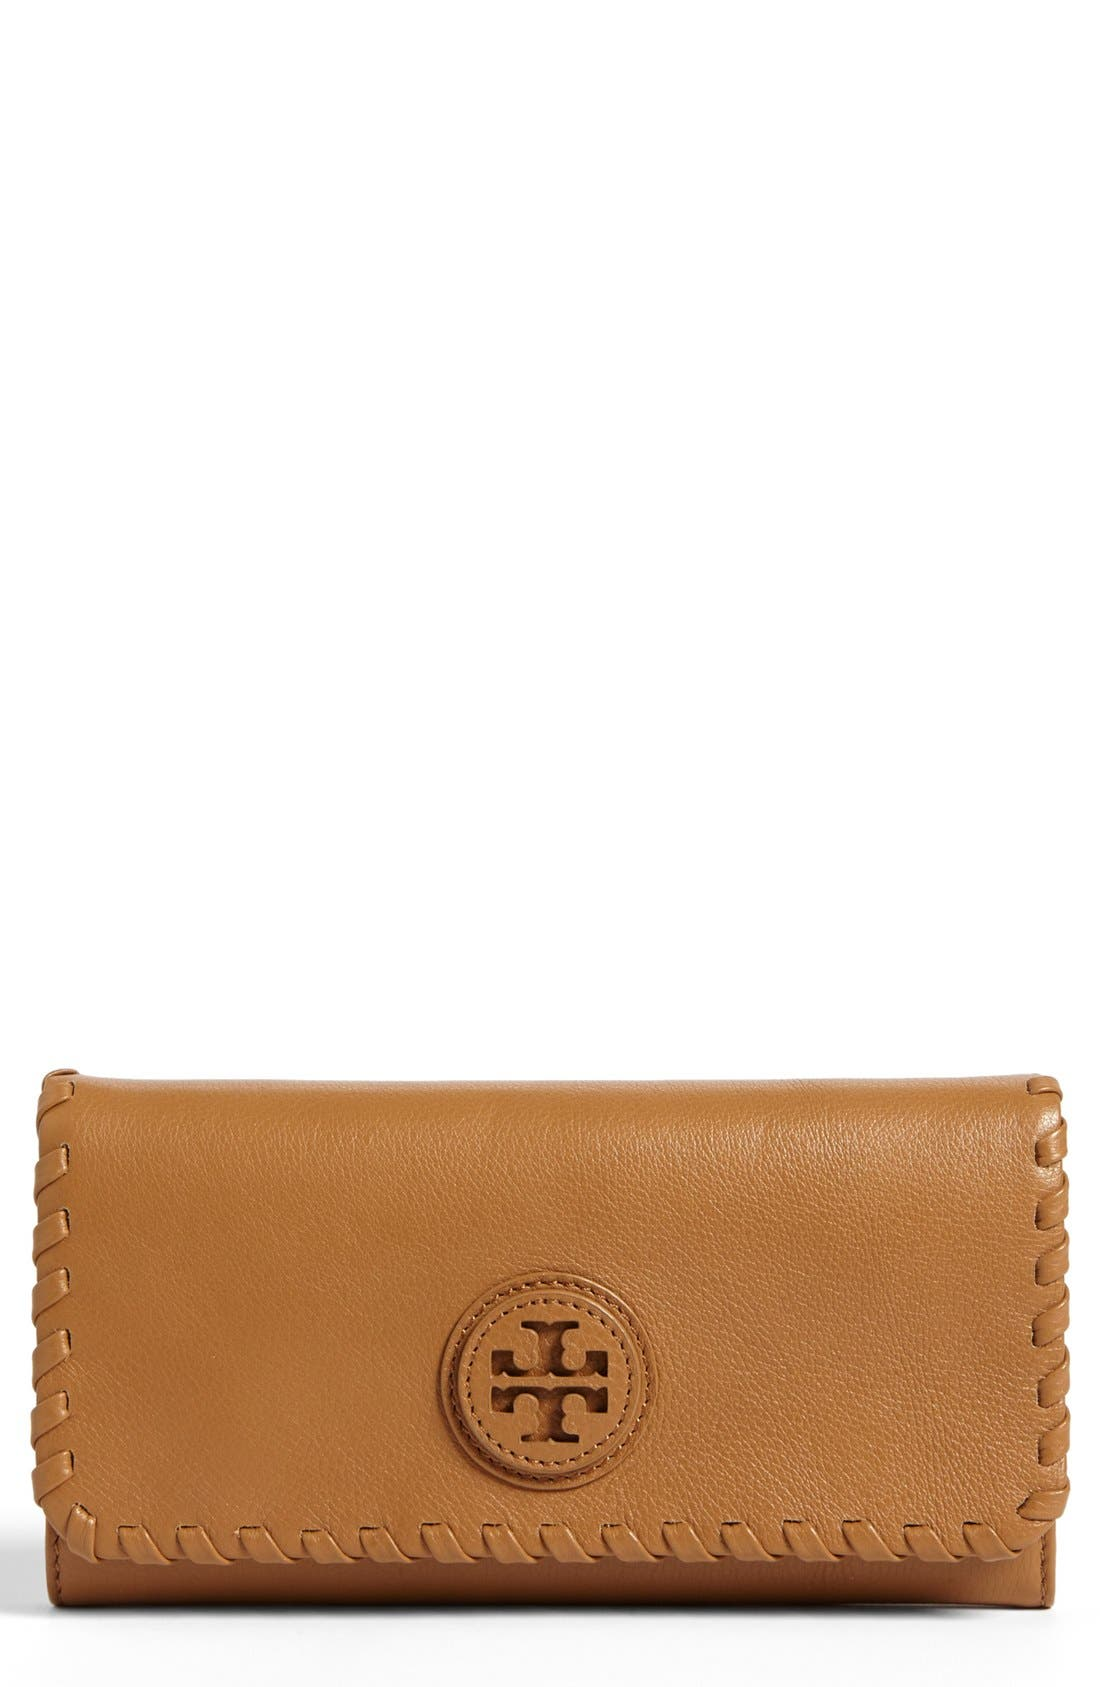 Main Image - Tory Burch 'Marion' Envelope Continental Wallet